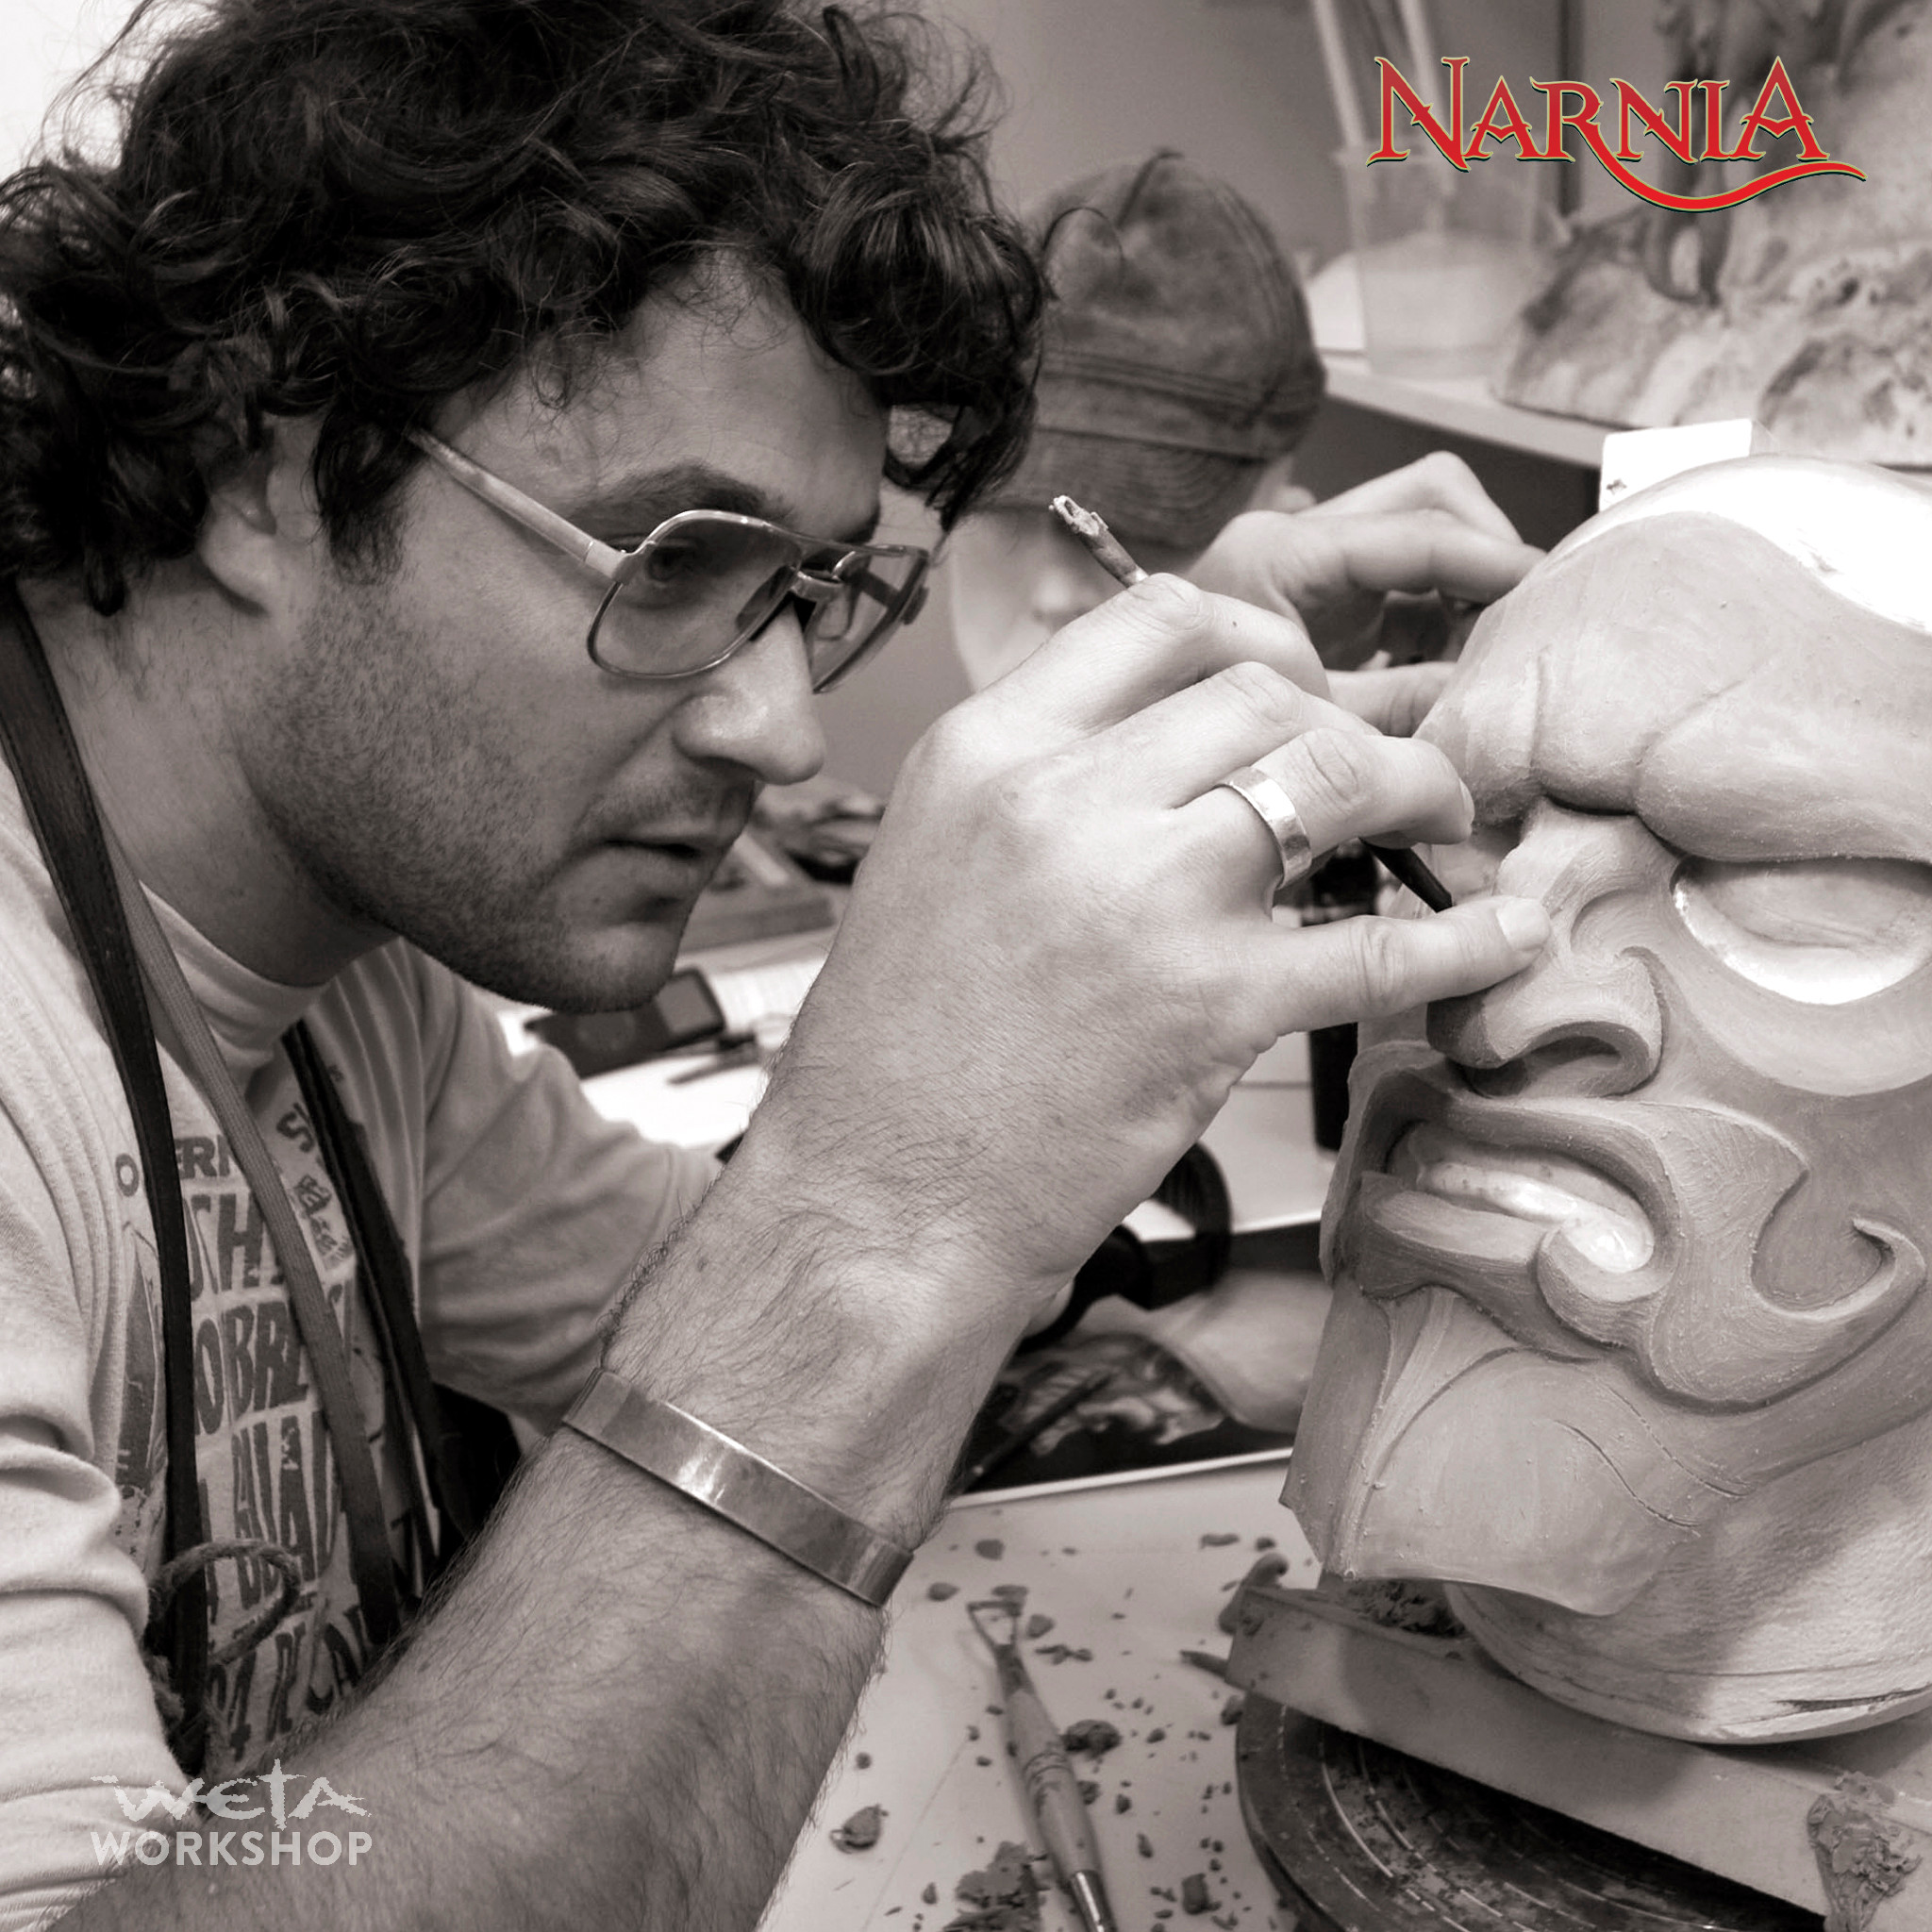 Max Patte, Weta Workshop